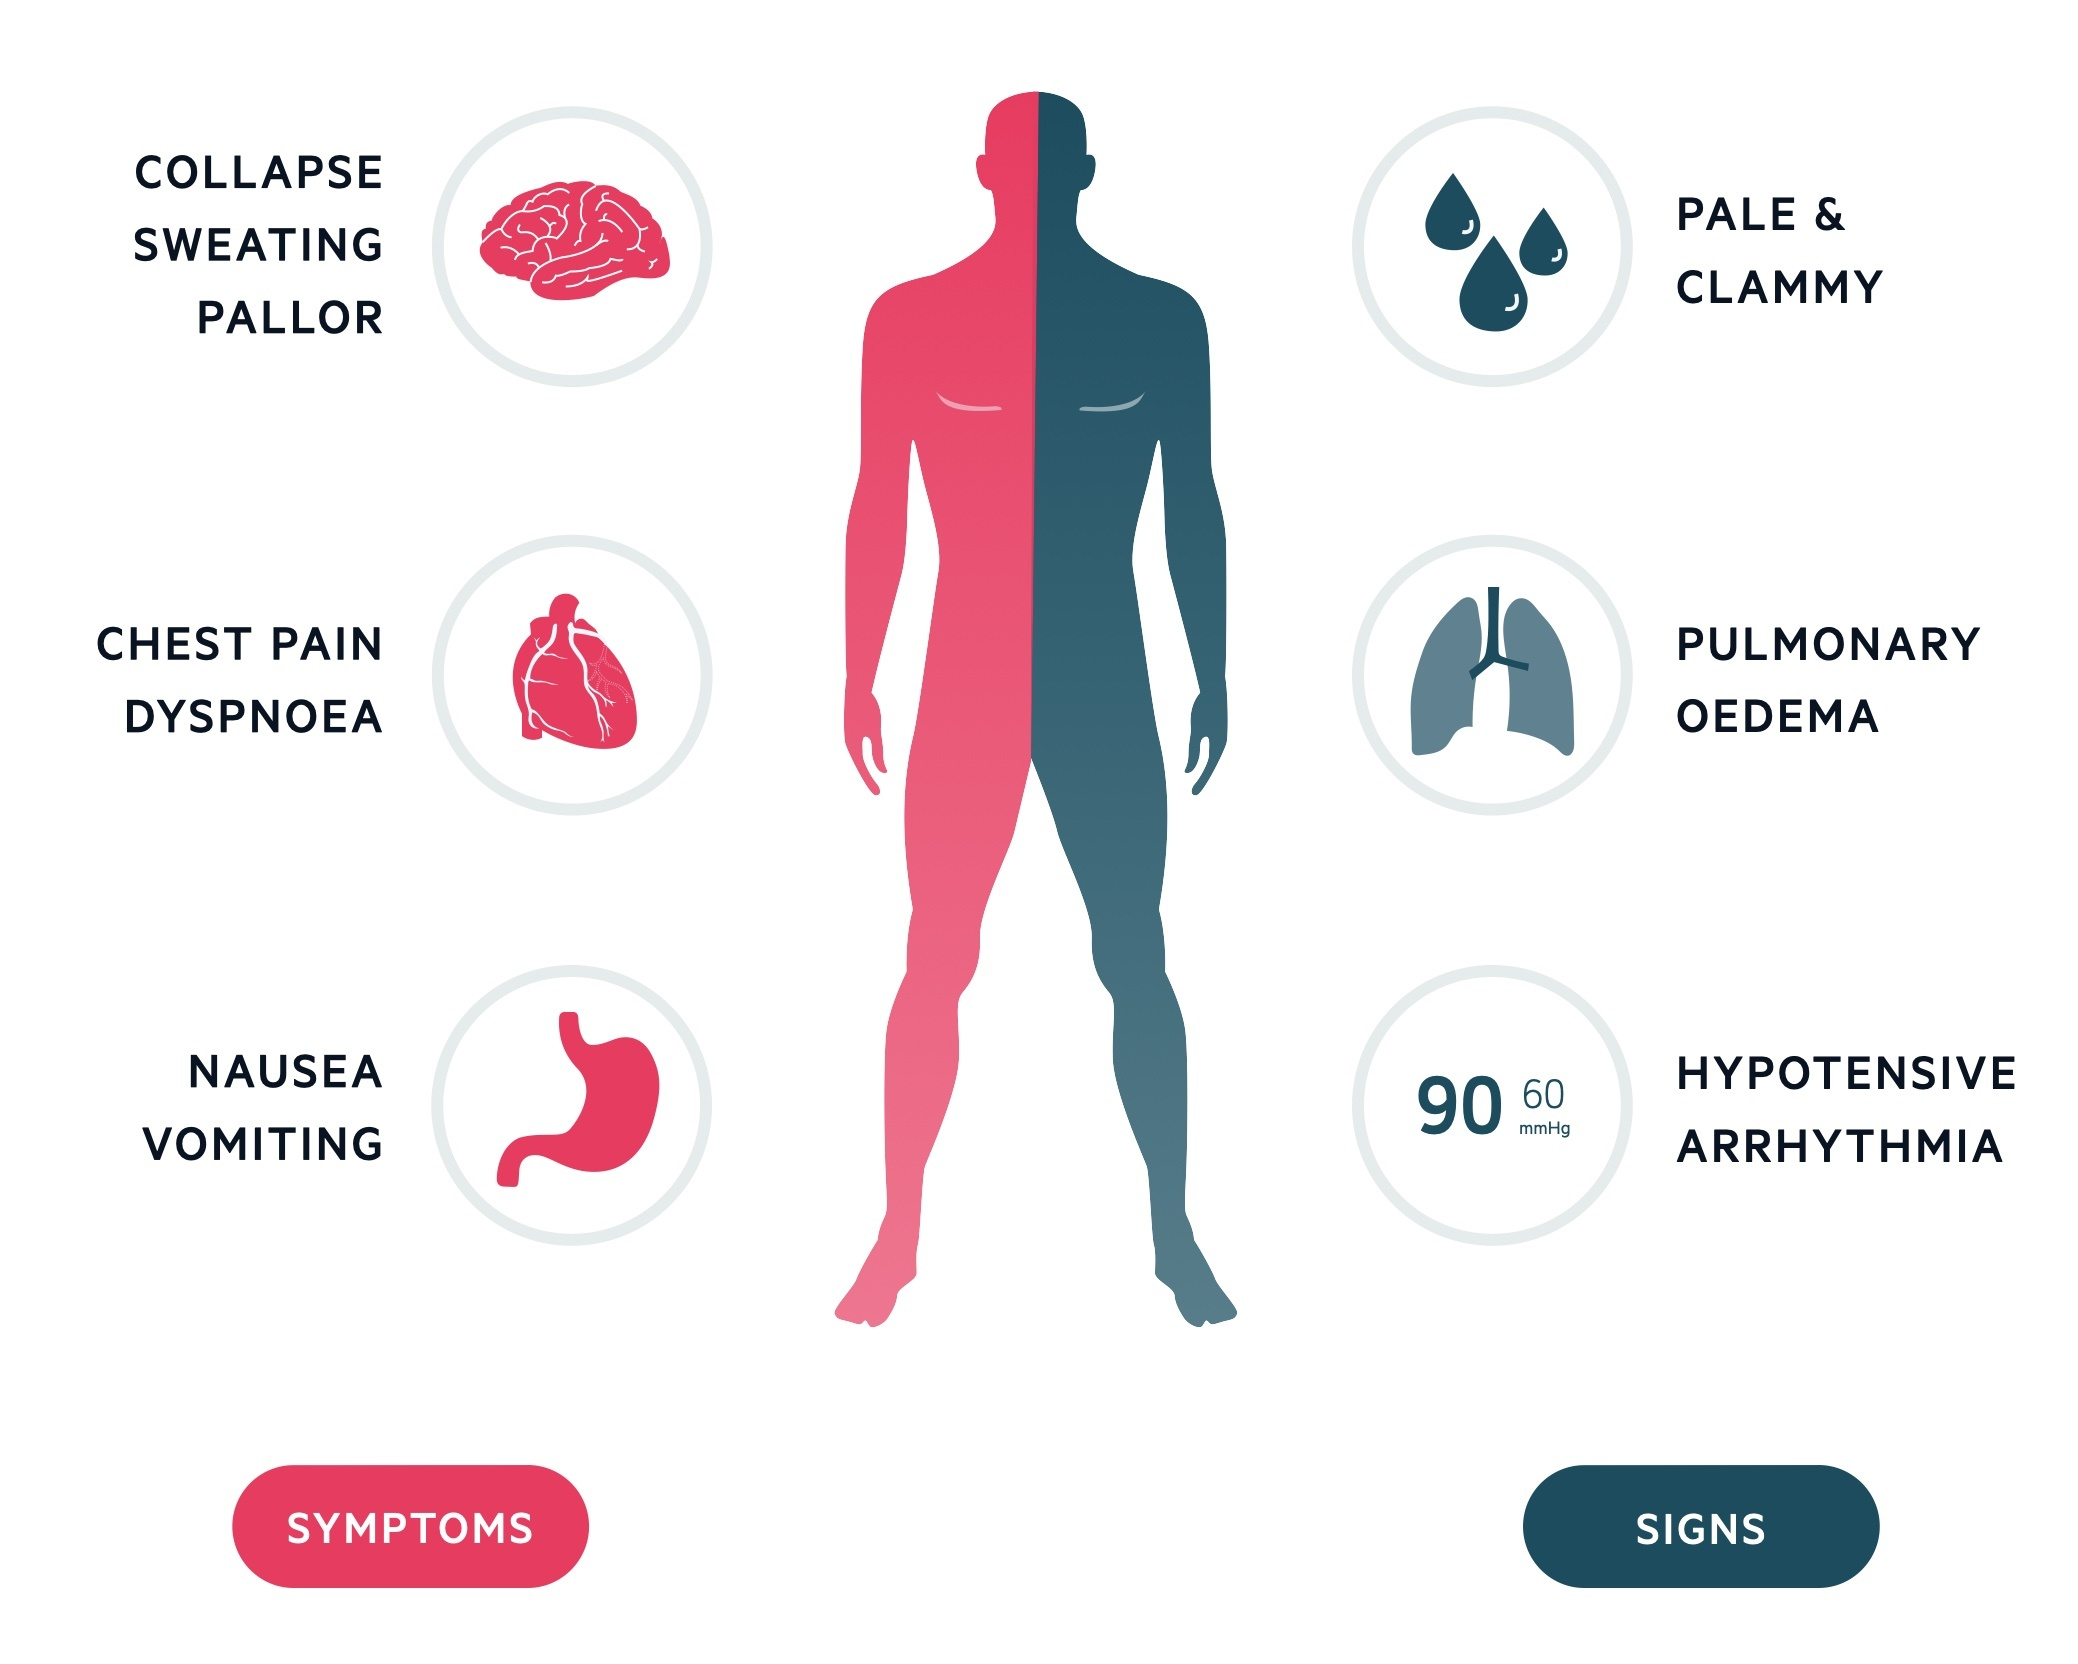 Clinical features of ACS